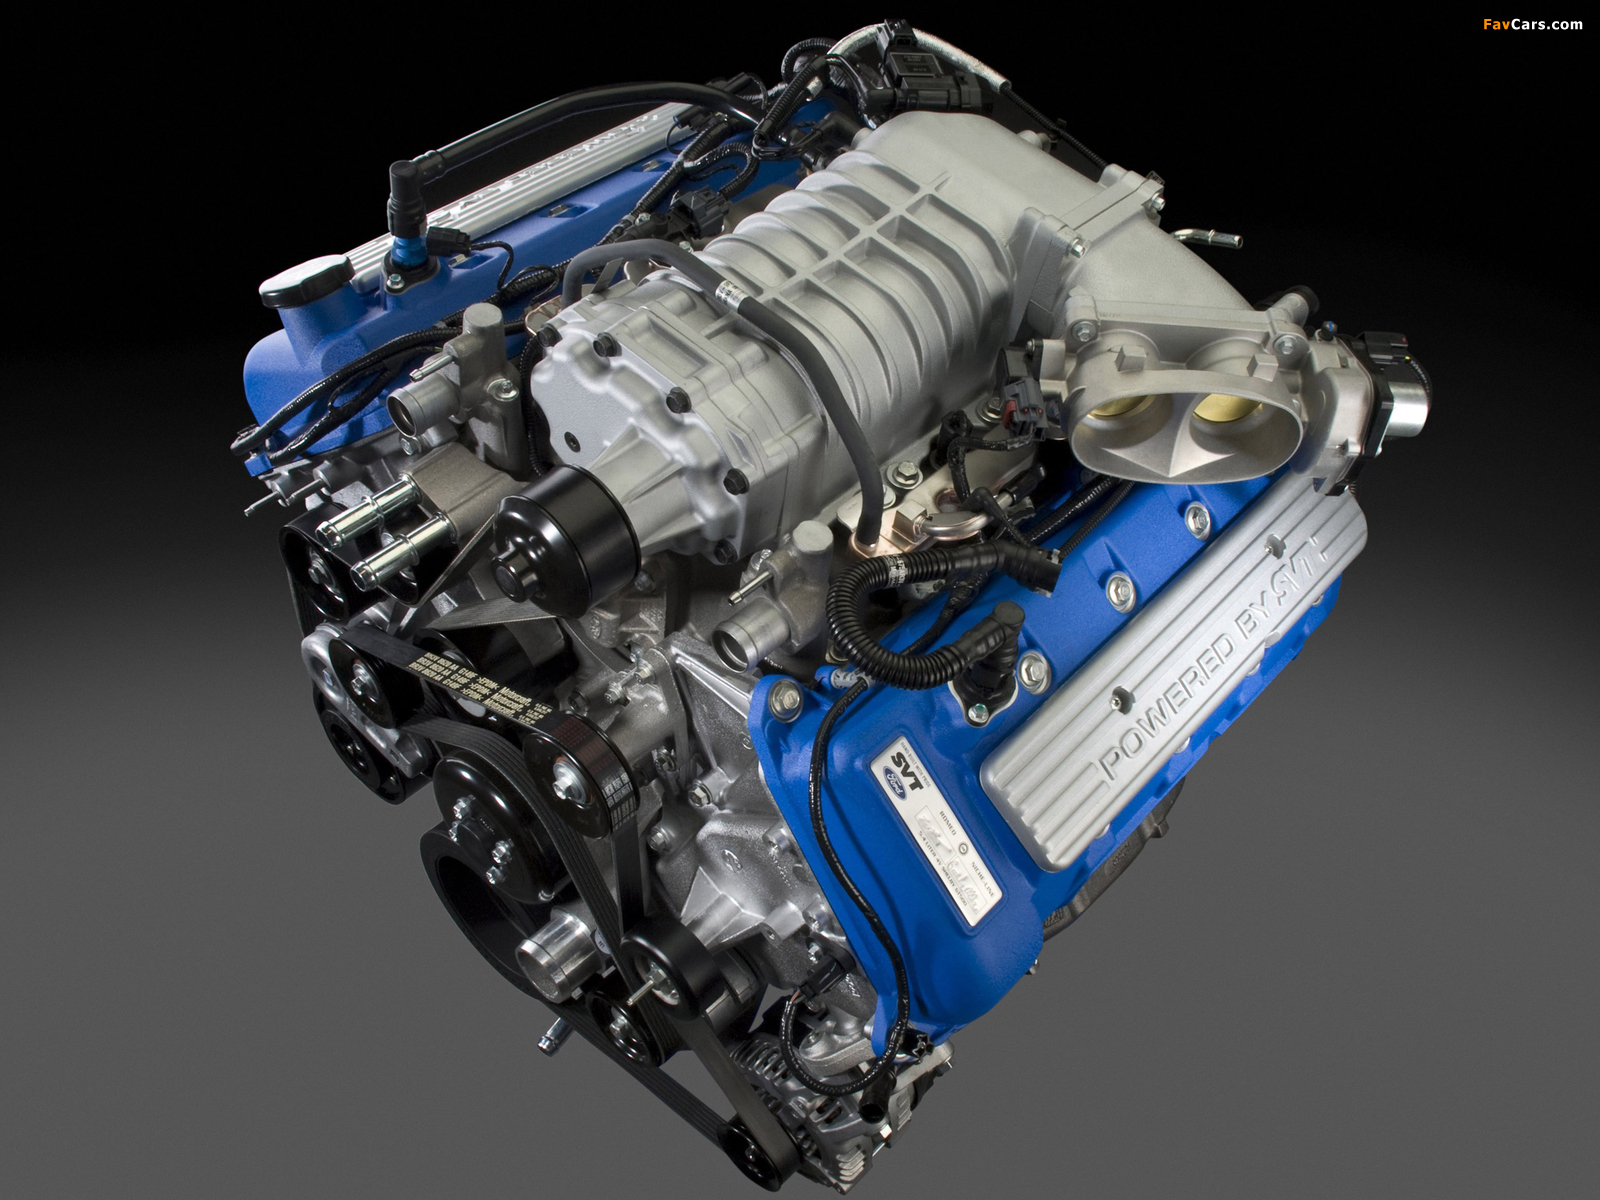 Photos of Engines  Shelby 5.4 V8 (1600 x 1200)